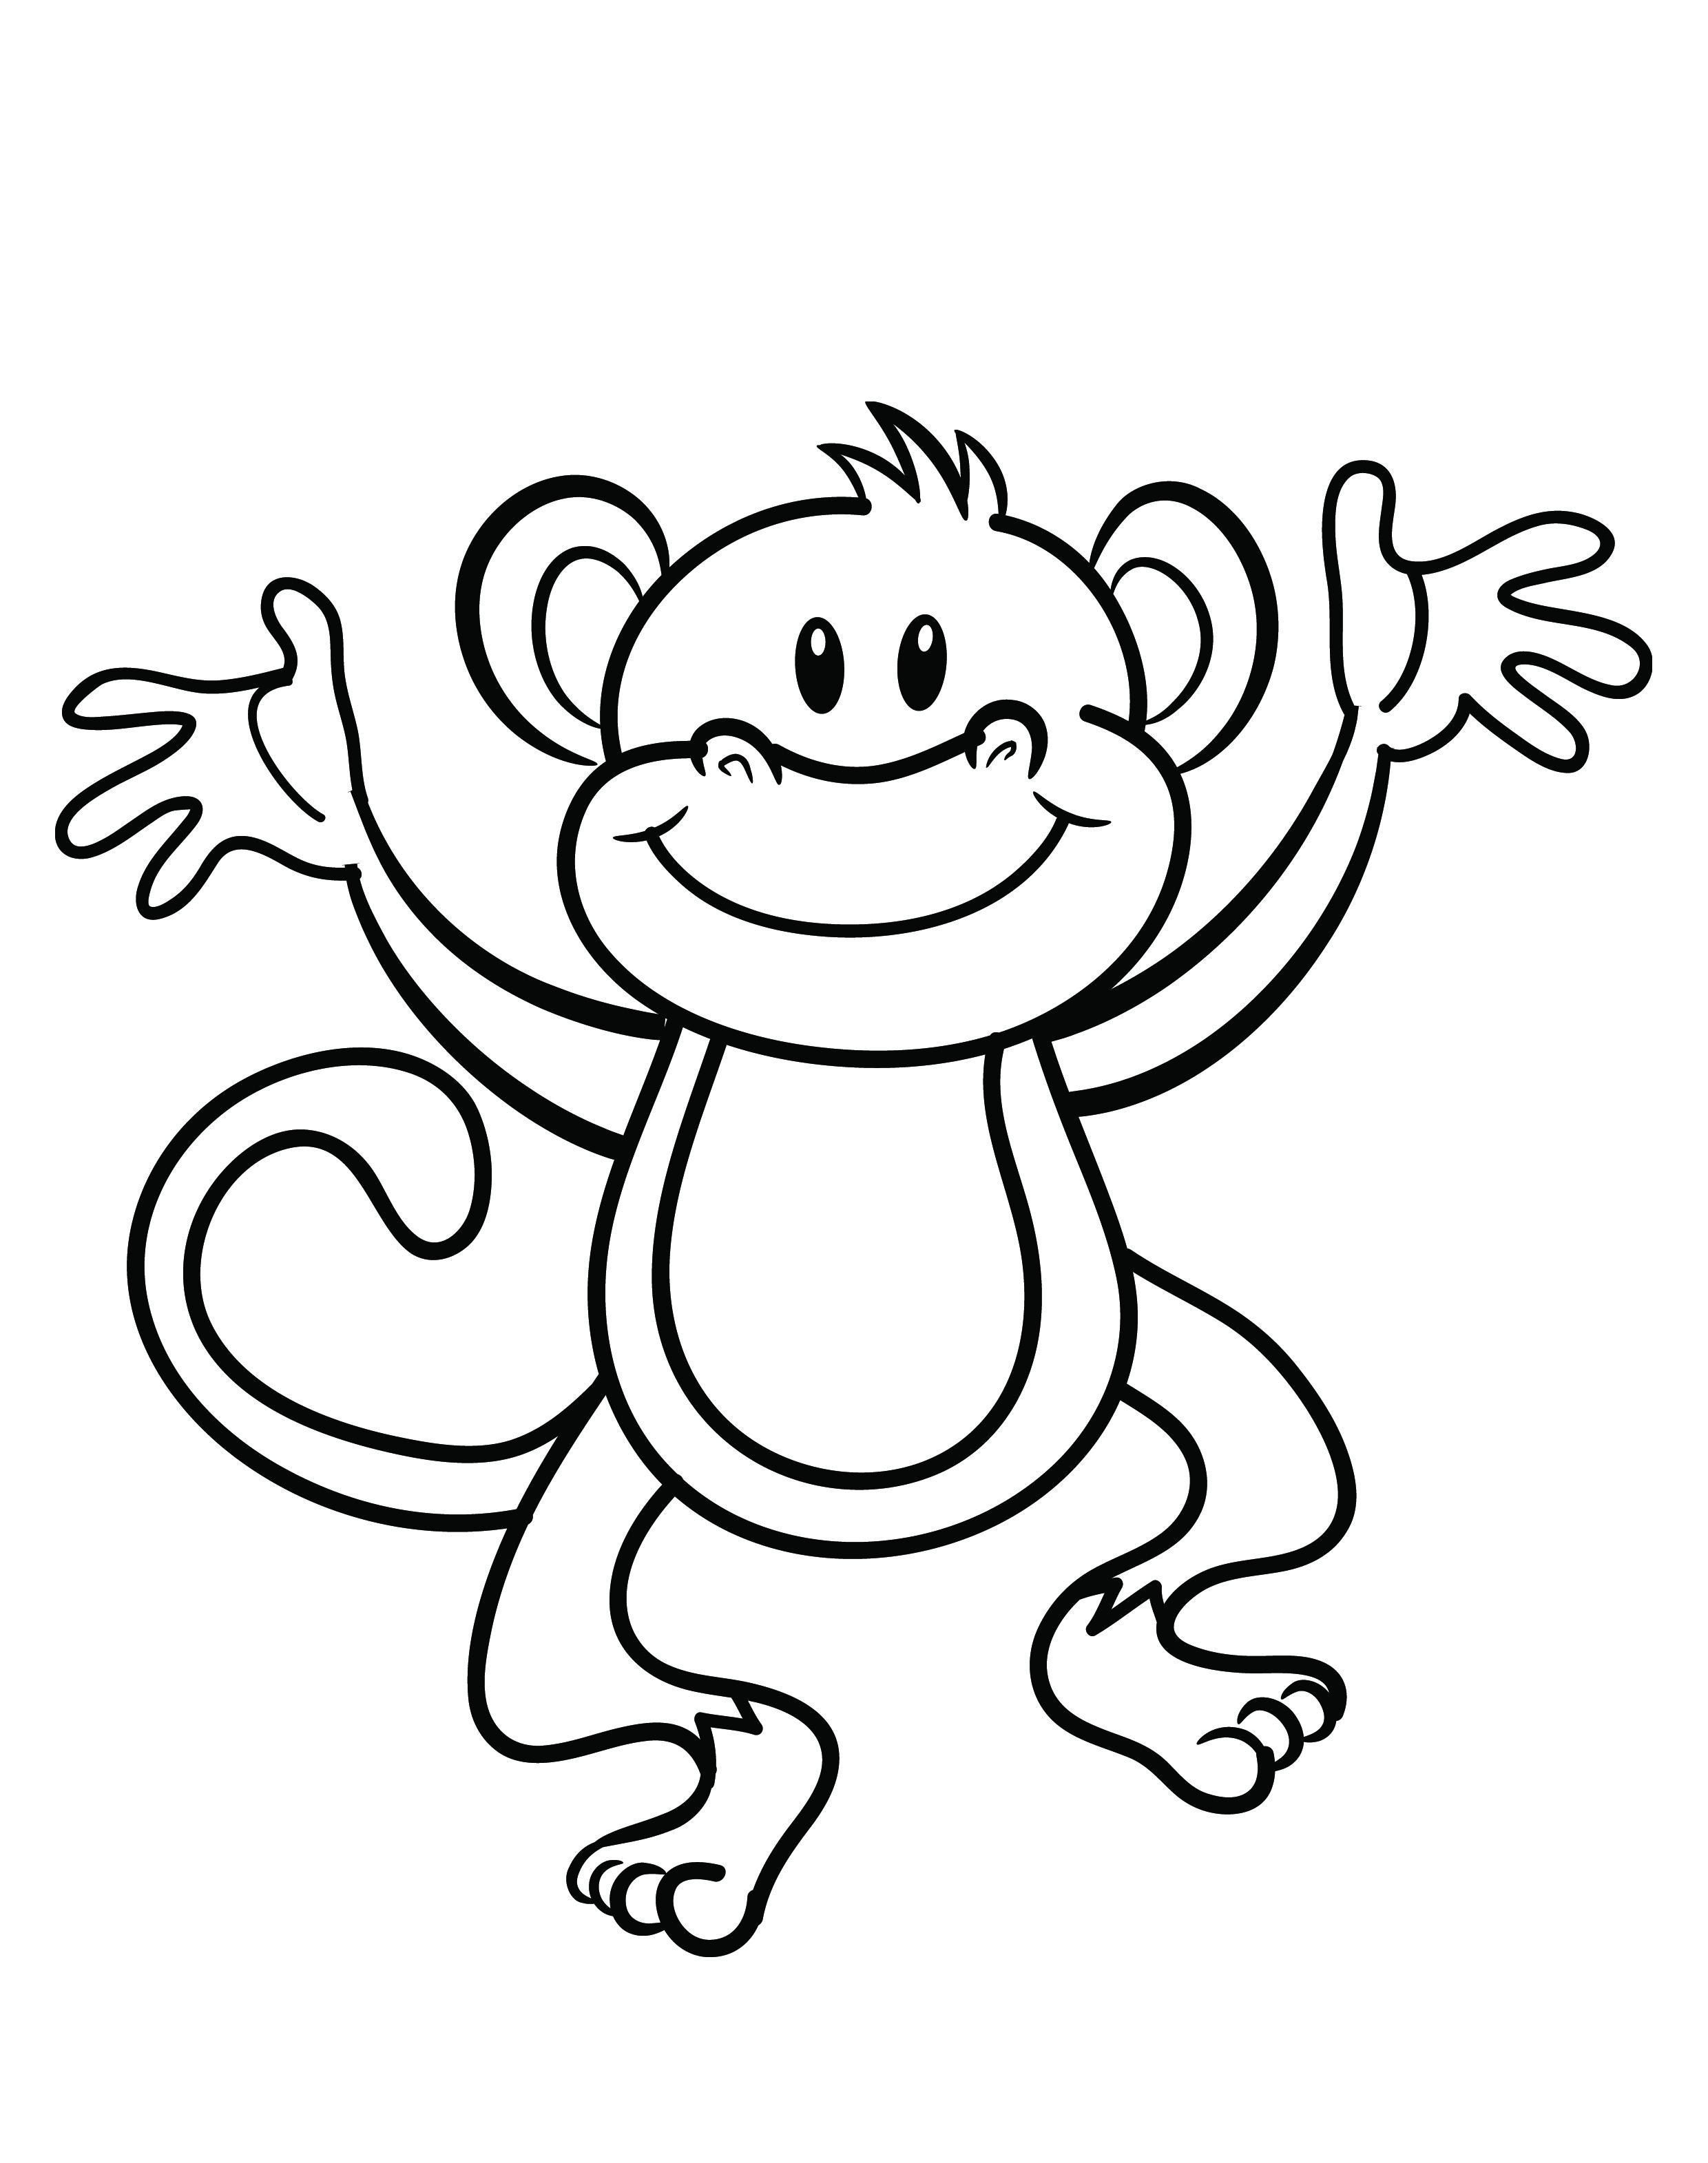 chimpanzee pictures to color free printable monkey coloring page with images monkey pictures to chimpanzee color